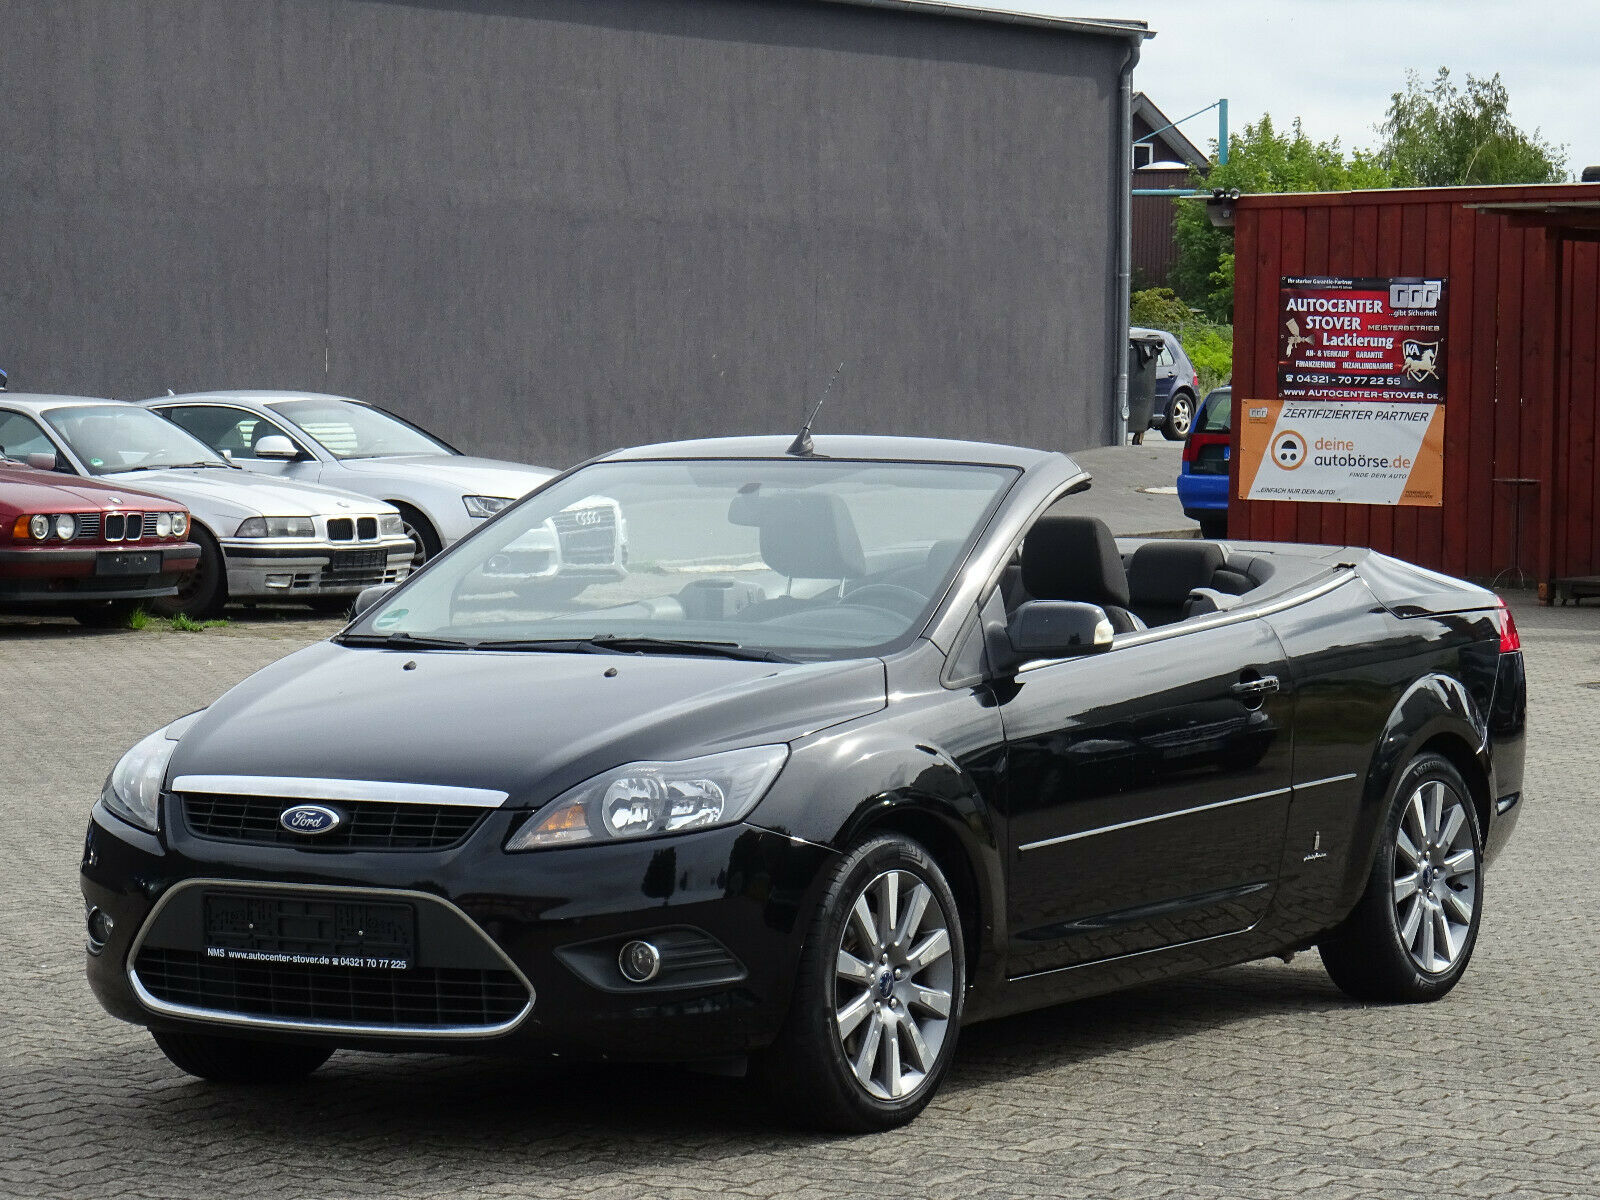 FORD Focus Coupe-Cabriolet2.0 -Klima-Alu-Standheizung